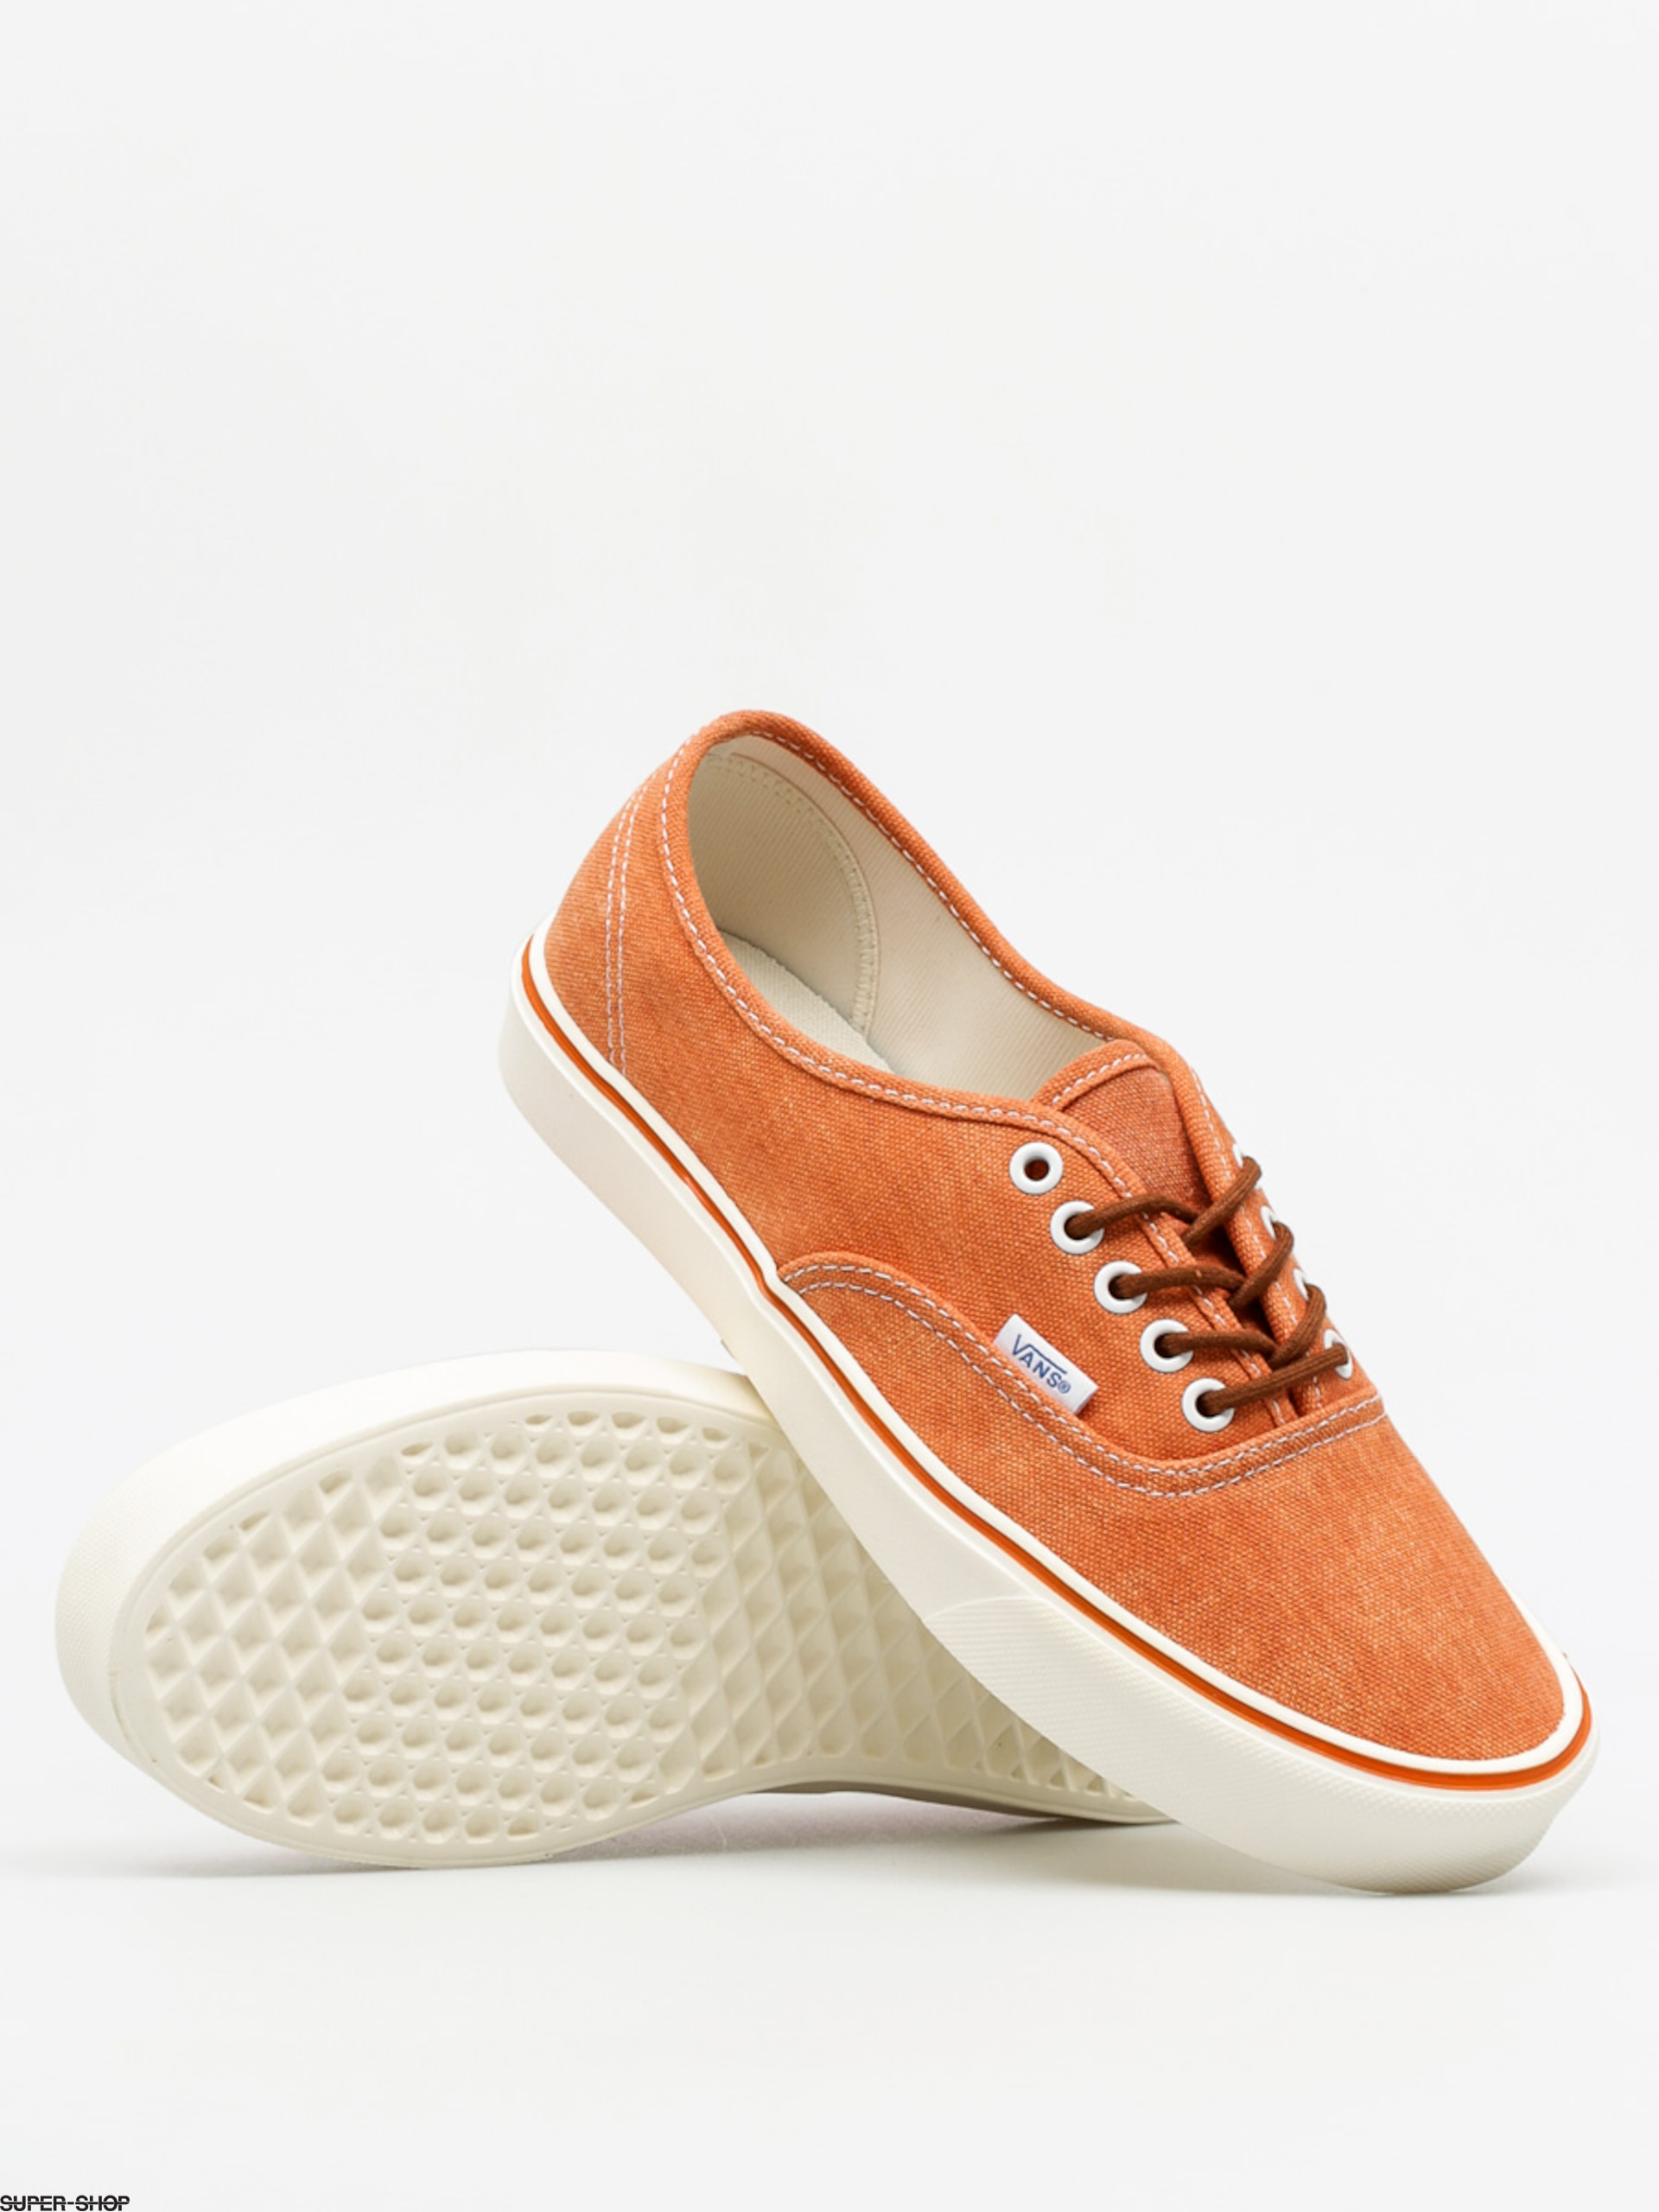 f3e85b395844a6 vans authentic lite burnt orange off 64% - www.les-viviers-de-rhuys.com